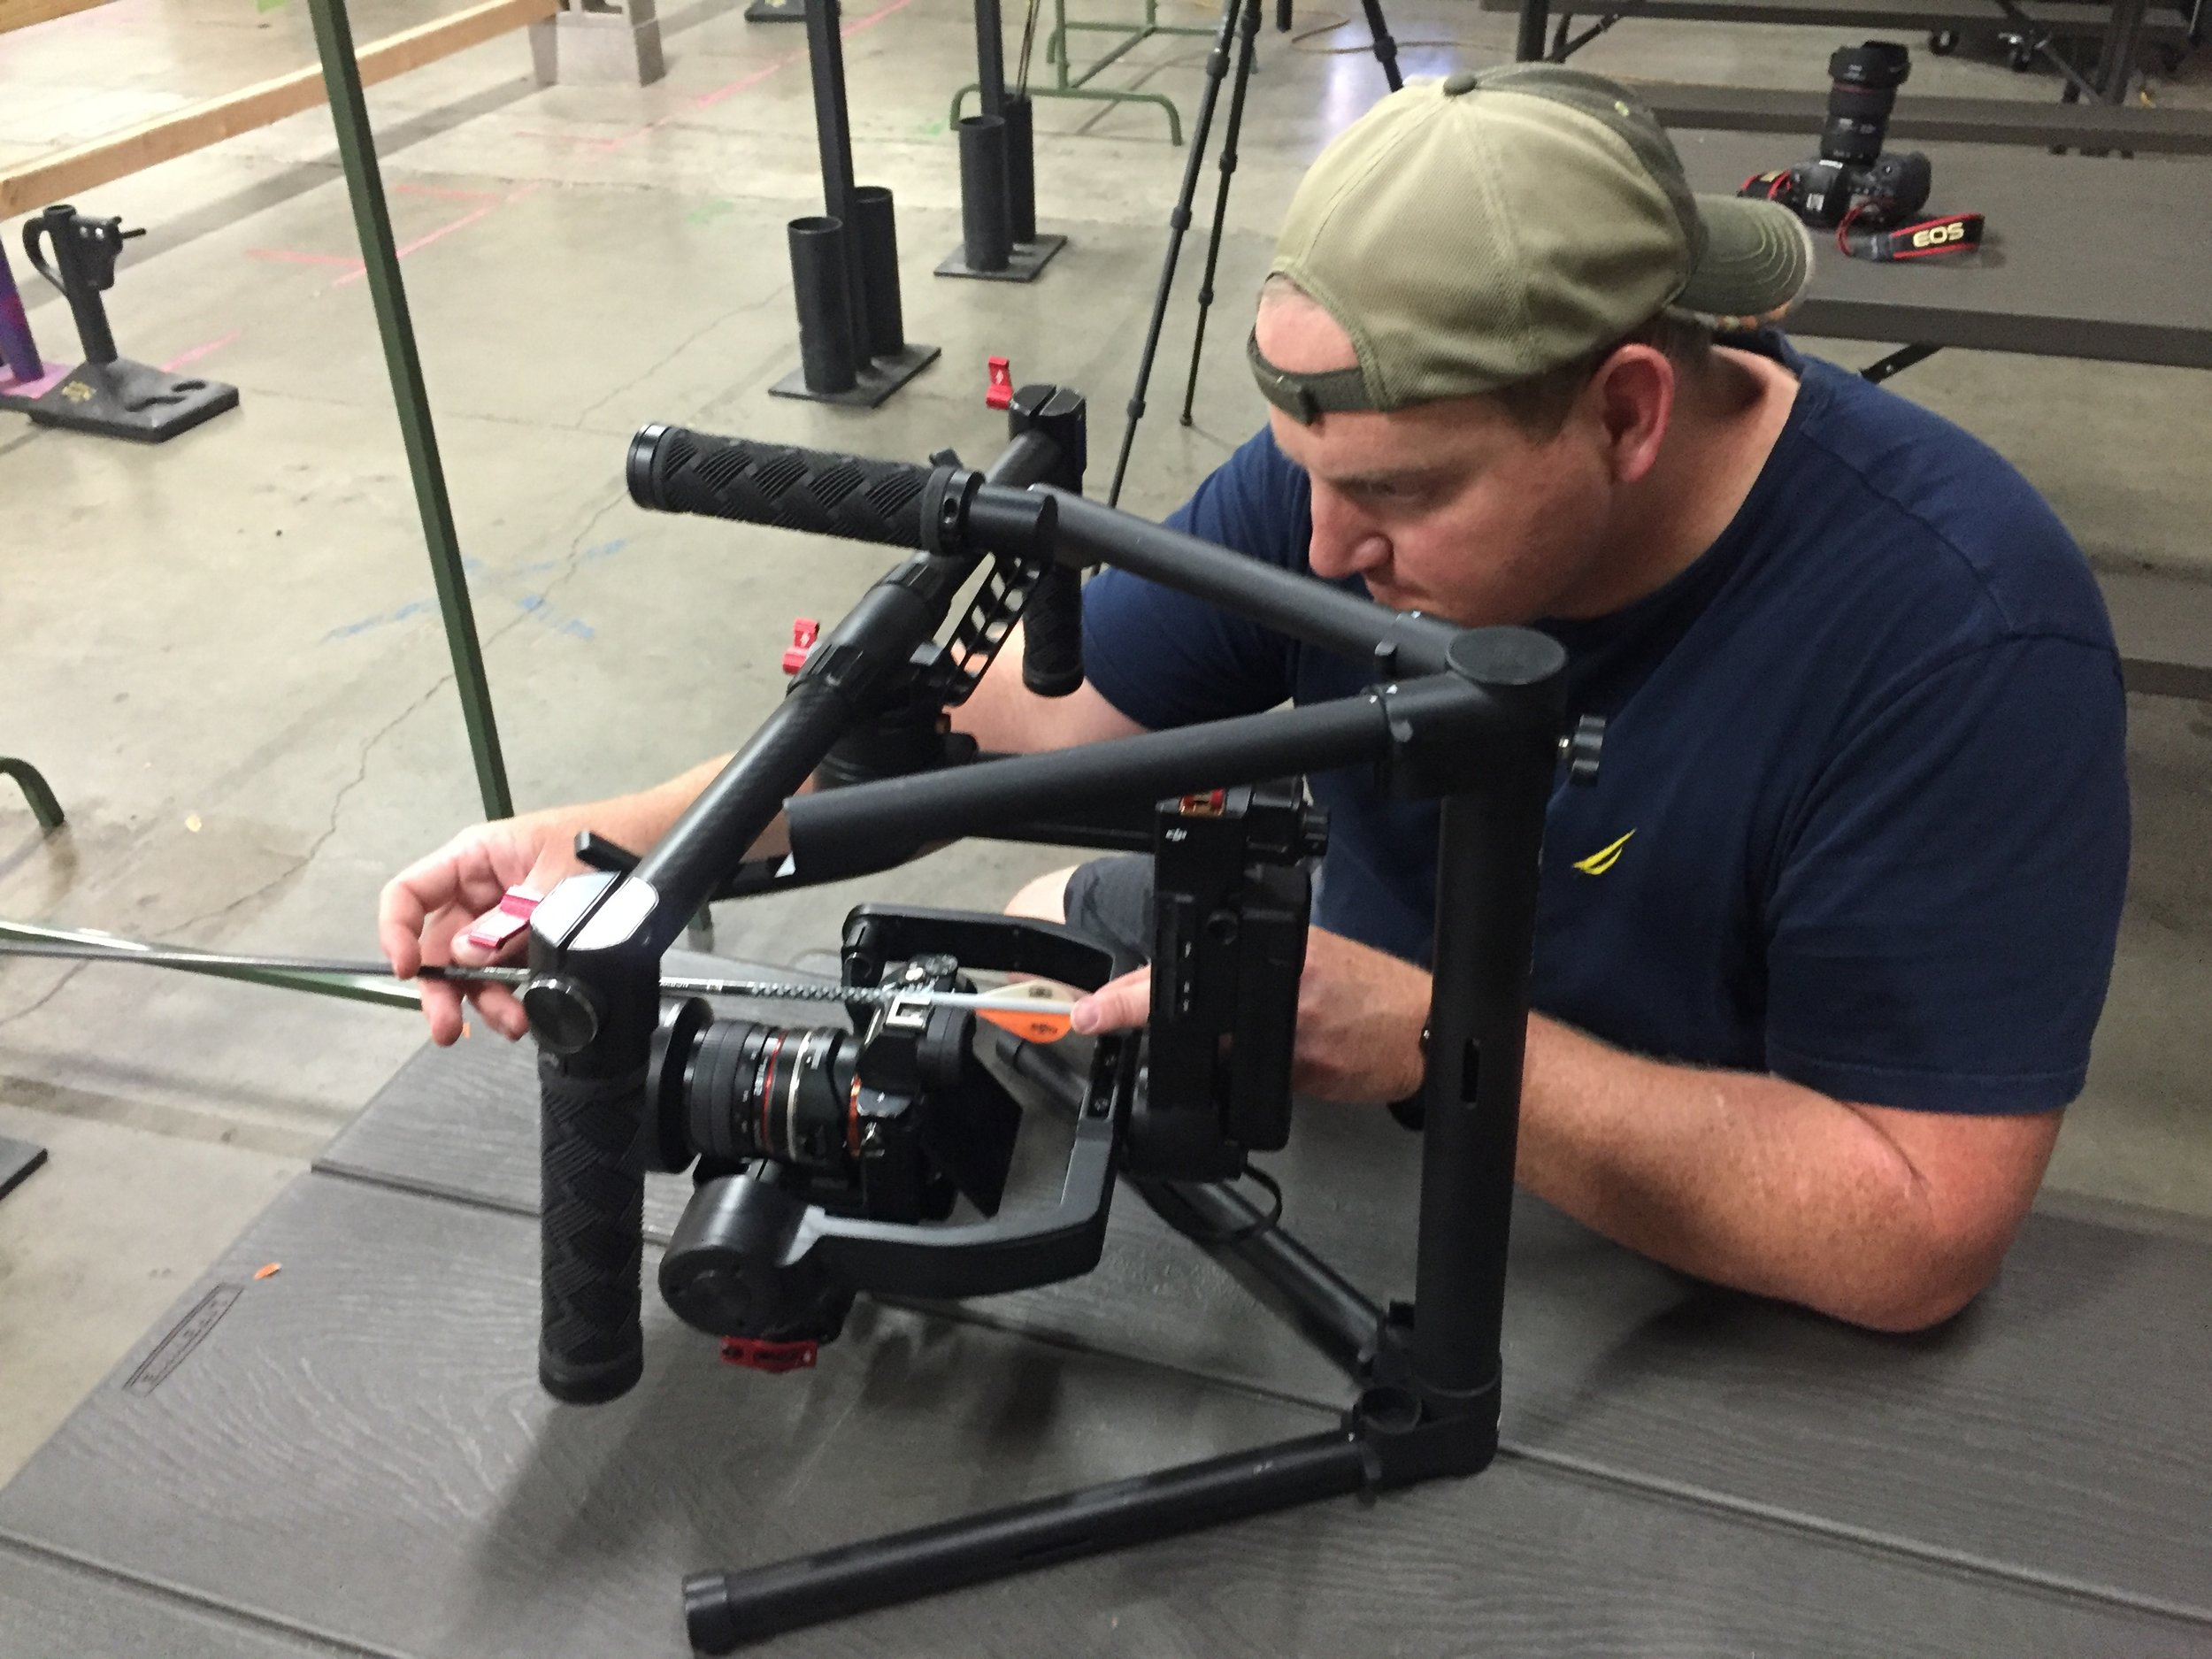 Setting up for a commercial shoot at Hit or Miss Archery Center